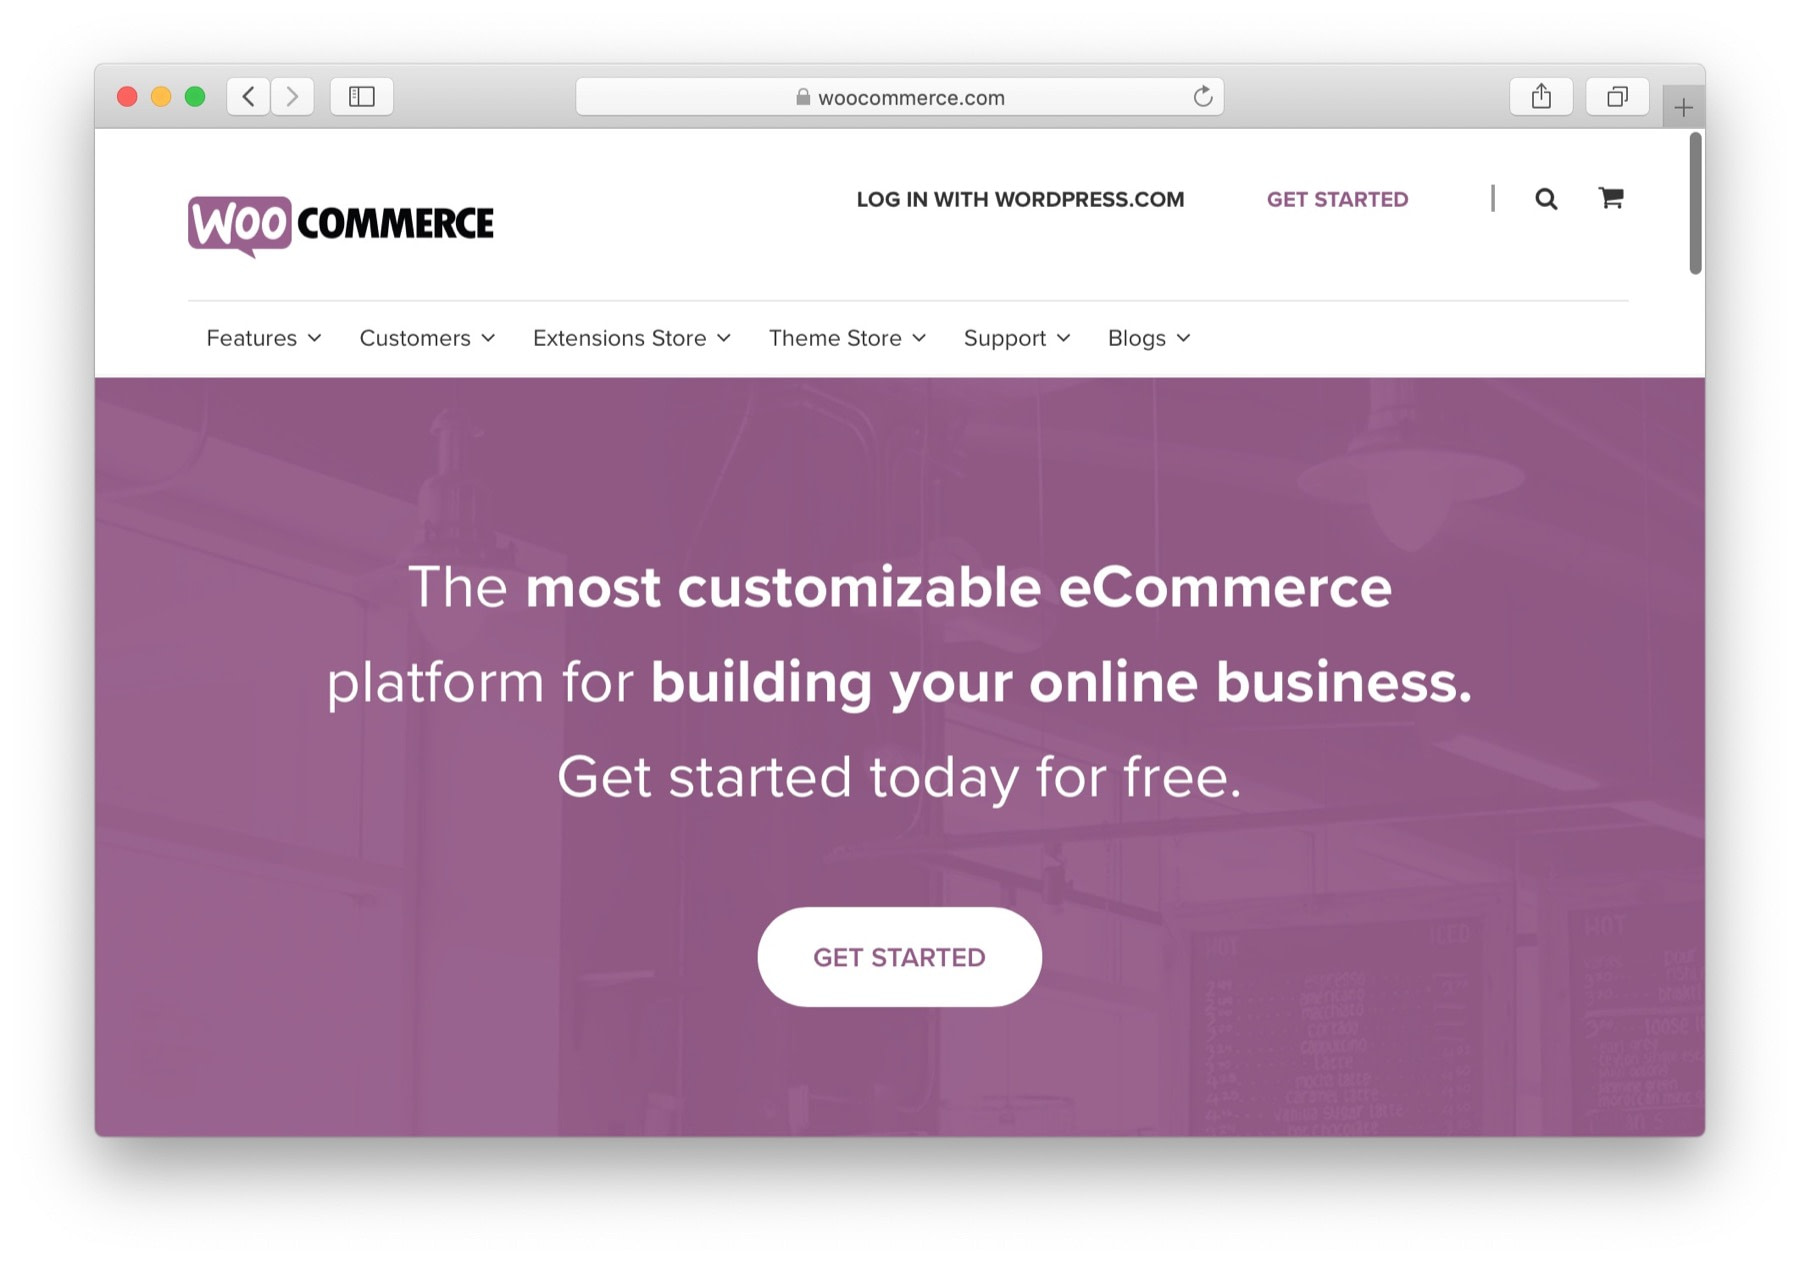 woocommerce - great platform to start eCommerce business